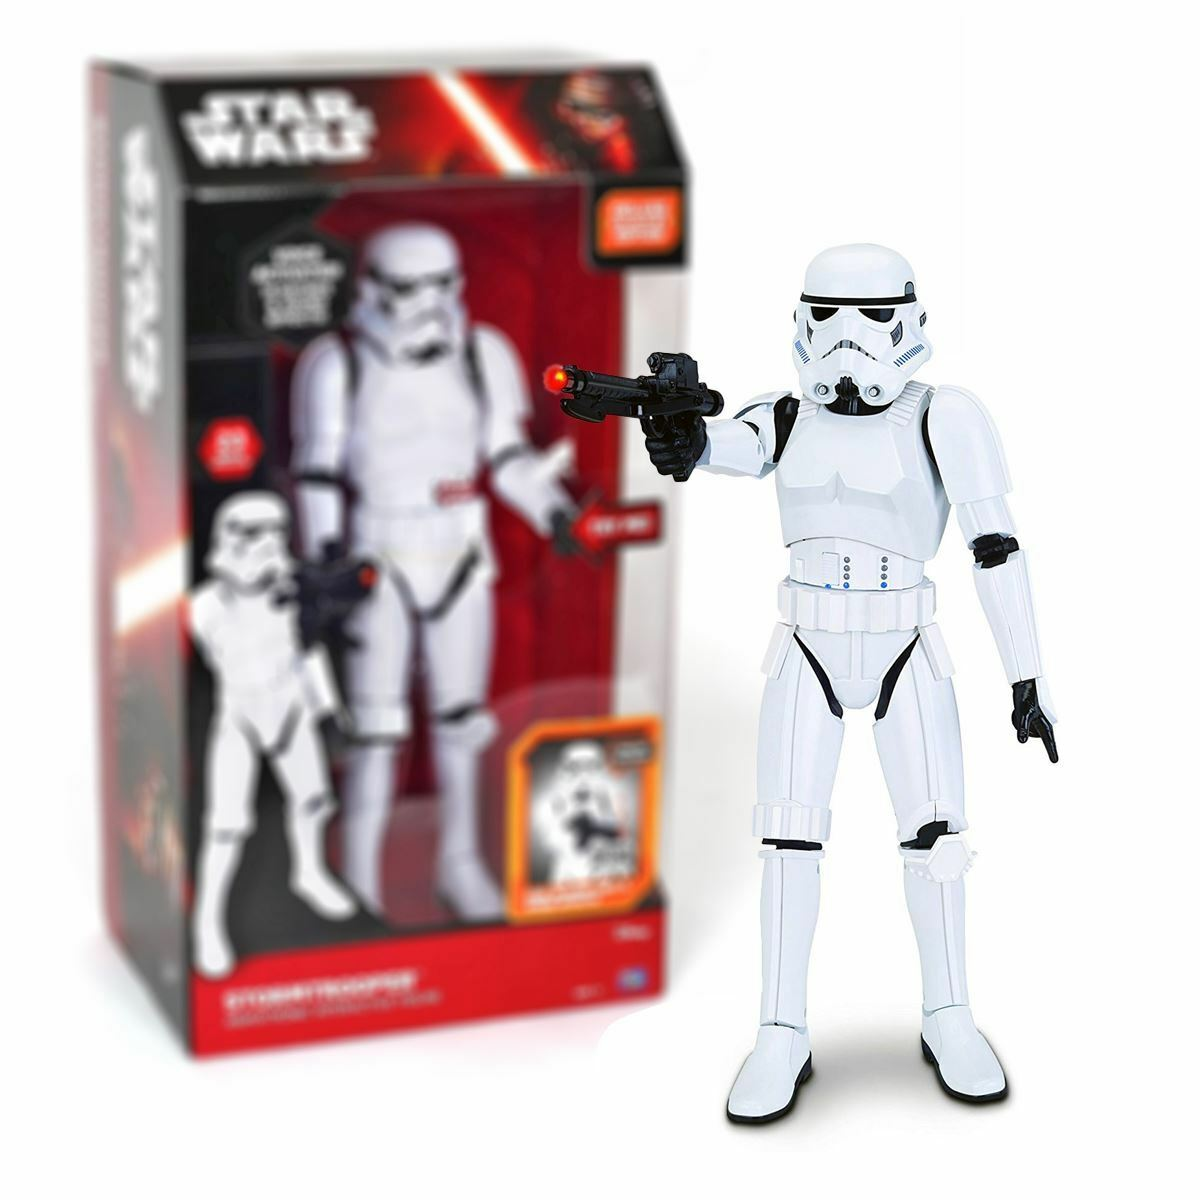 Neuf Allemand Parlant Star Wars Stormtrooper Interactif Figurine Sfx Officel